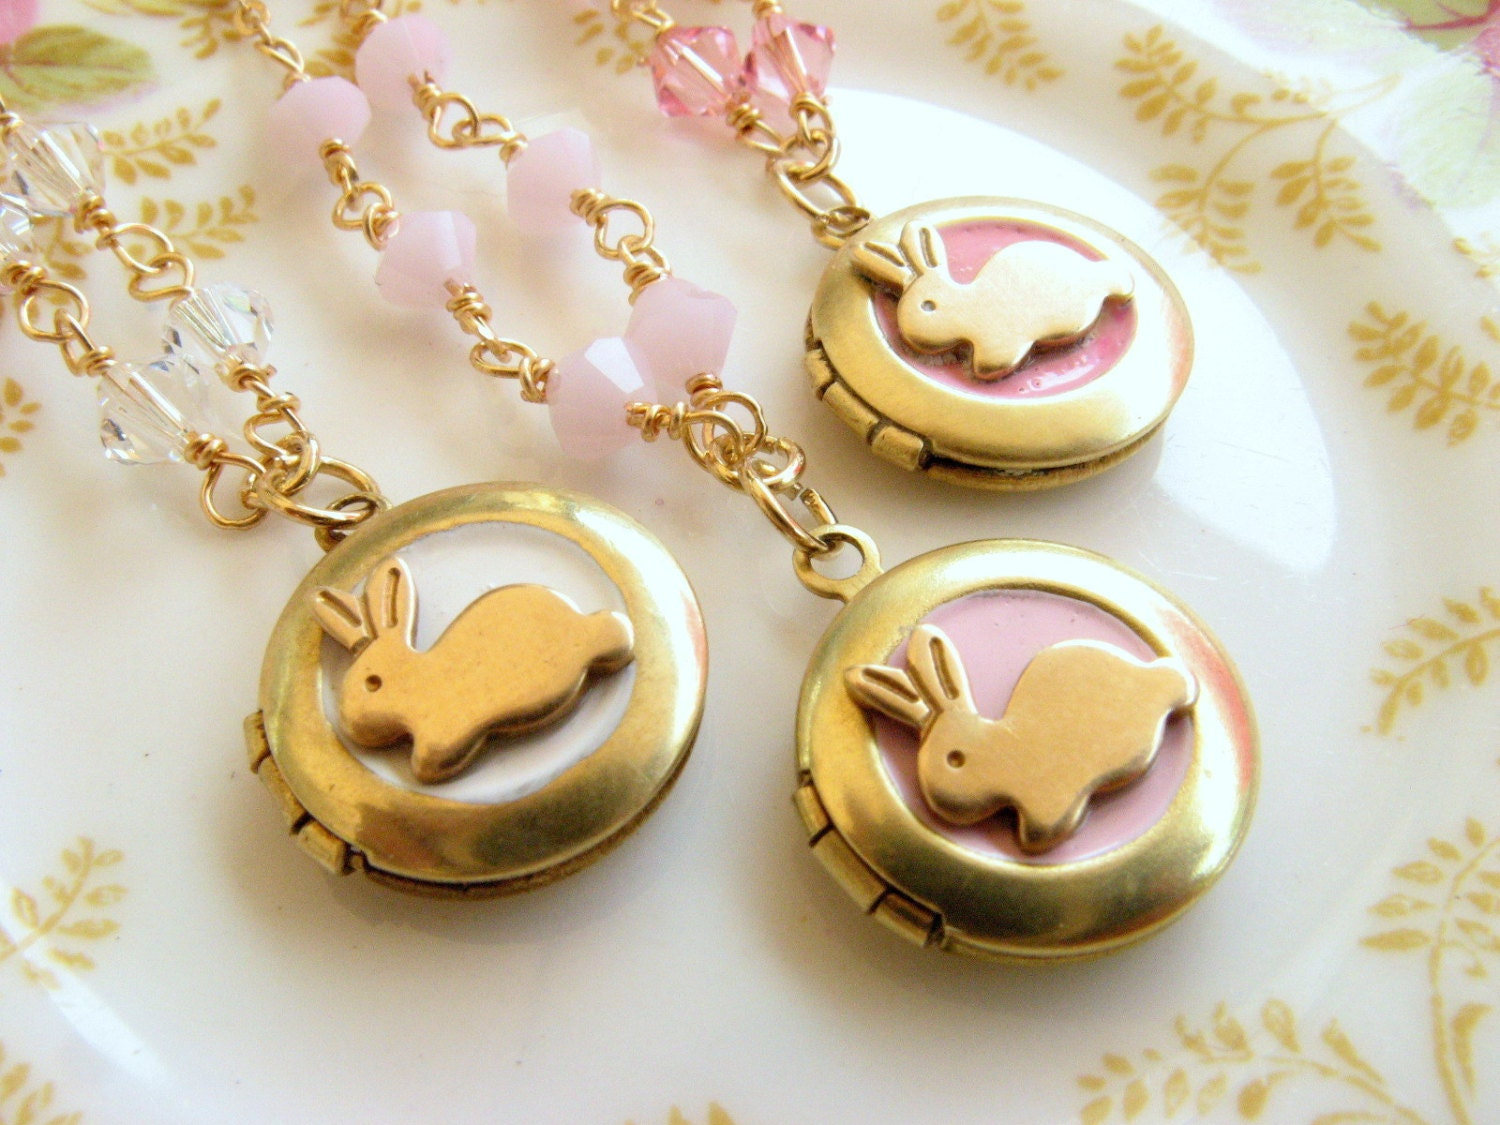 Bunny locket necklace Little Girl necklace jewelry